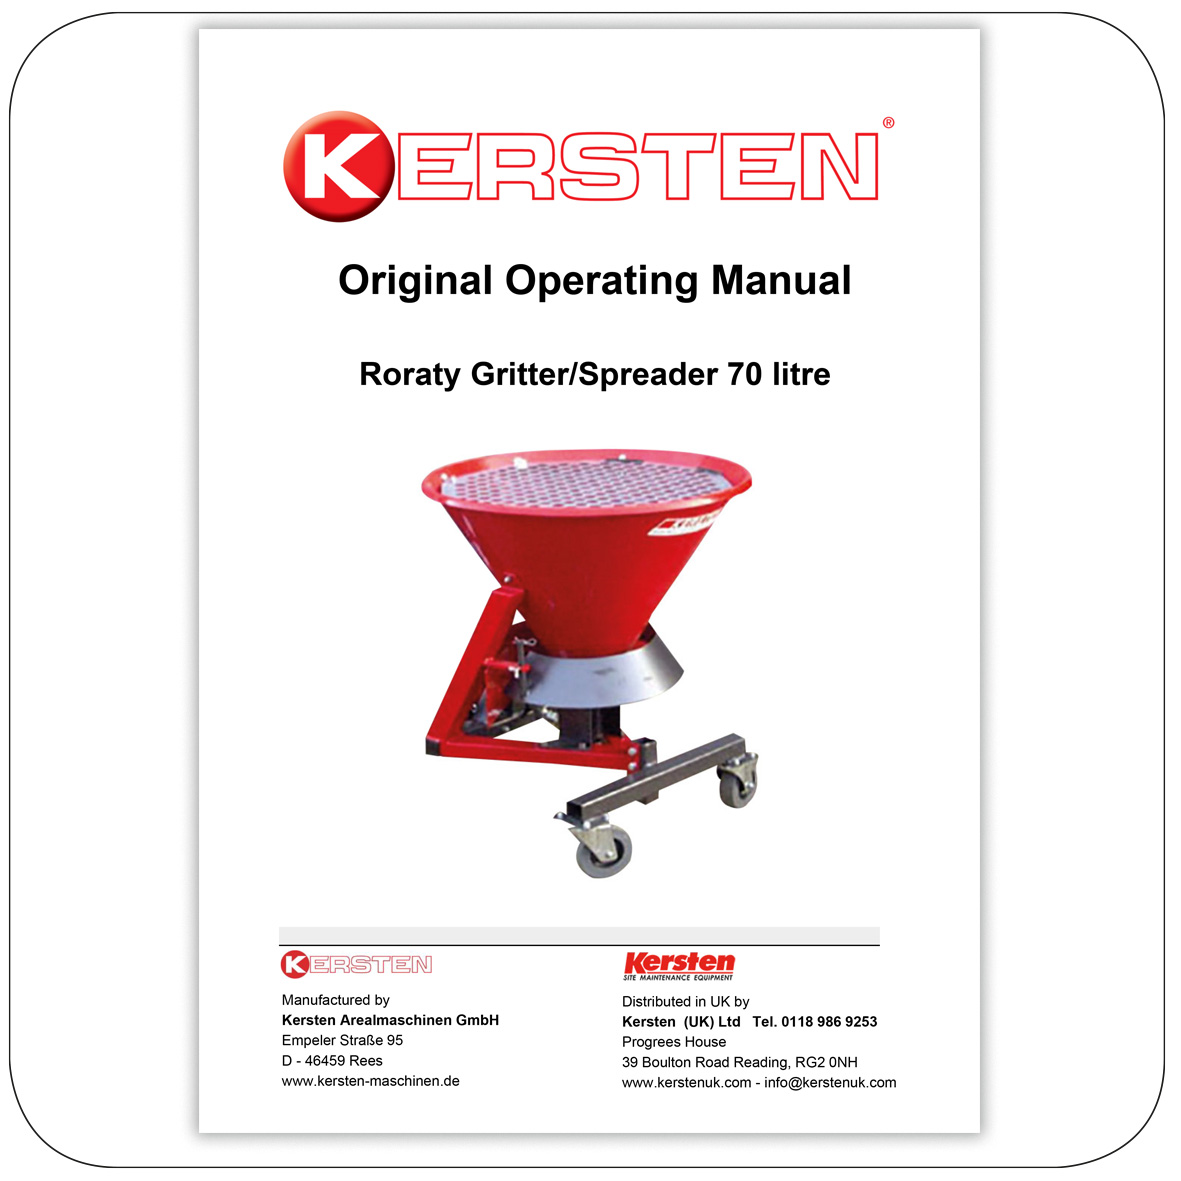 Instruction Manual - Kersten Gritter-Spreader - Attachments